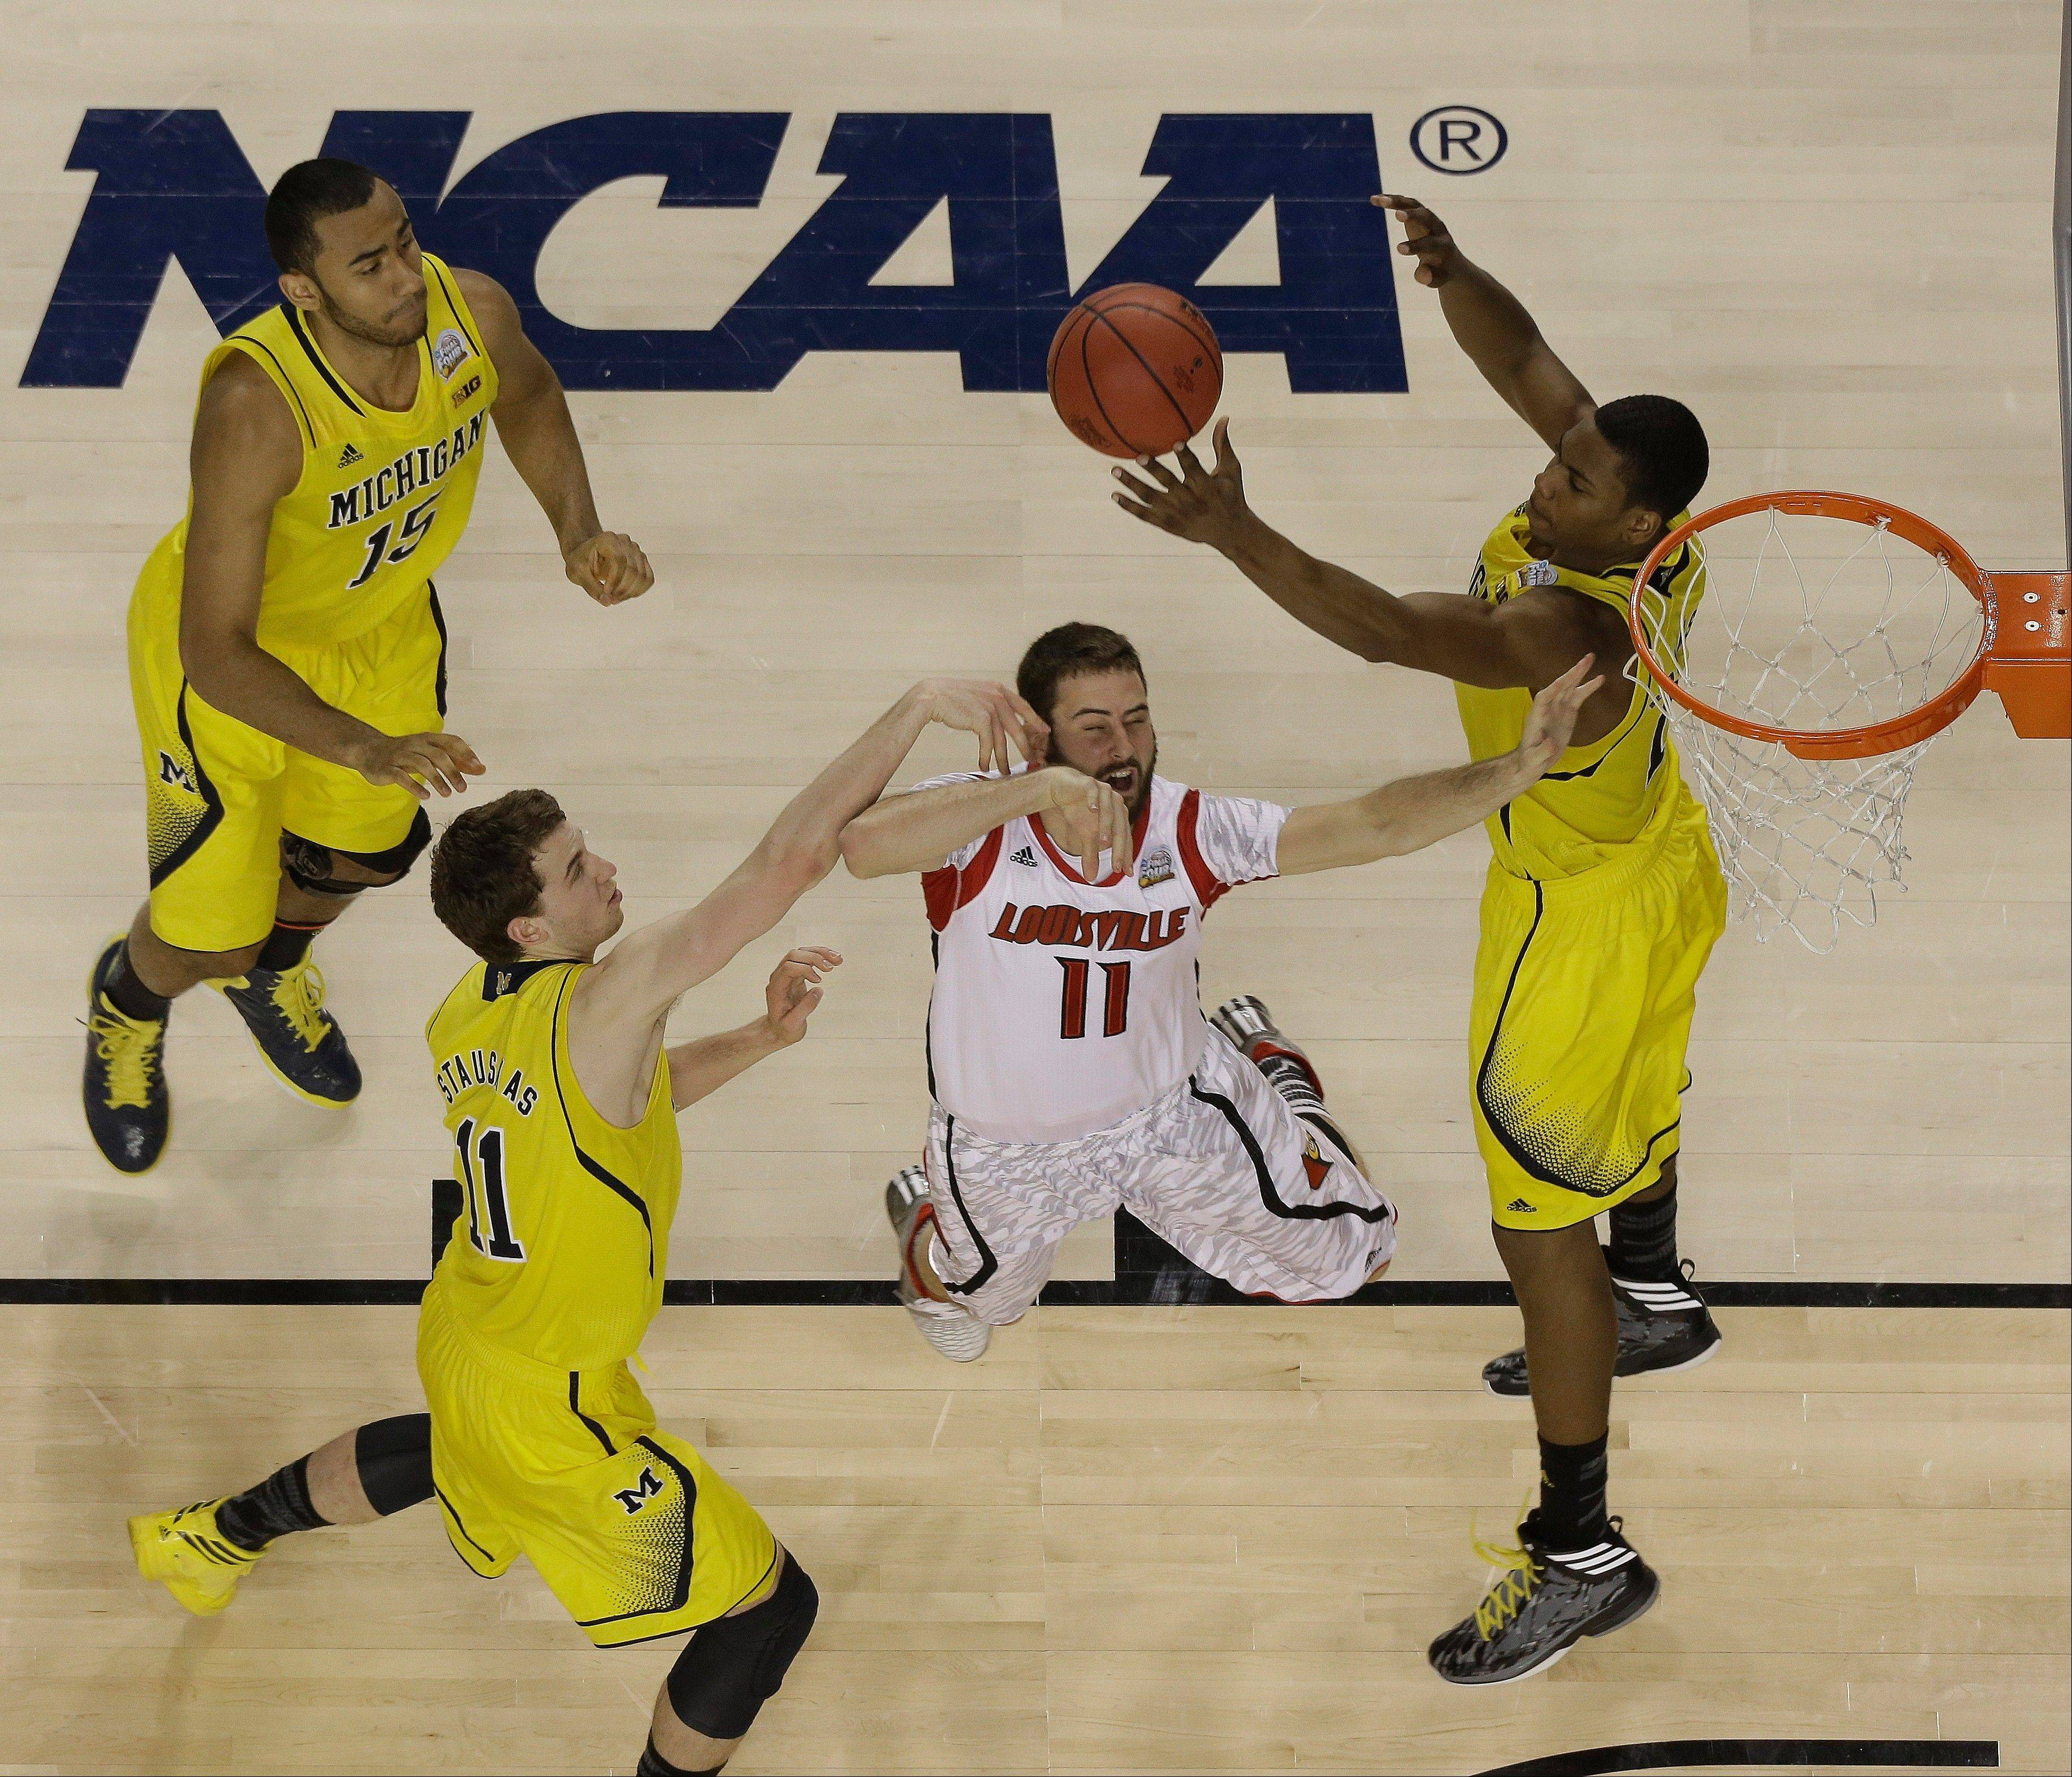 Louisville guard/forward Luke Hancock (11) loses the ball as Michigan forward Glenn Robinson III (1) and Michigan guard Nik Stauskas (11) defend during the first half of the NCAA Final Four tournament college basketball championship game Monday, April 8, 2013, in Atlanta.